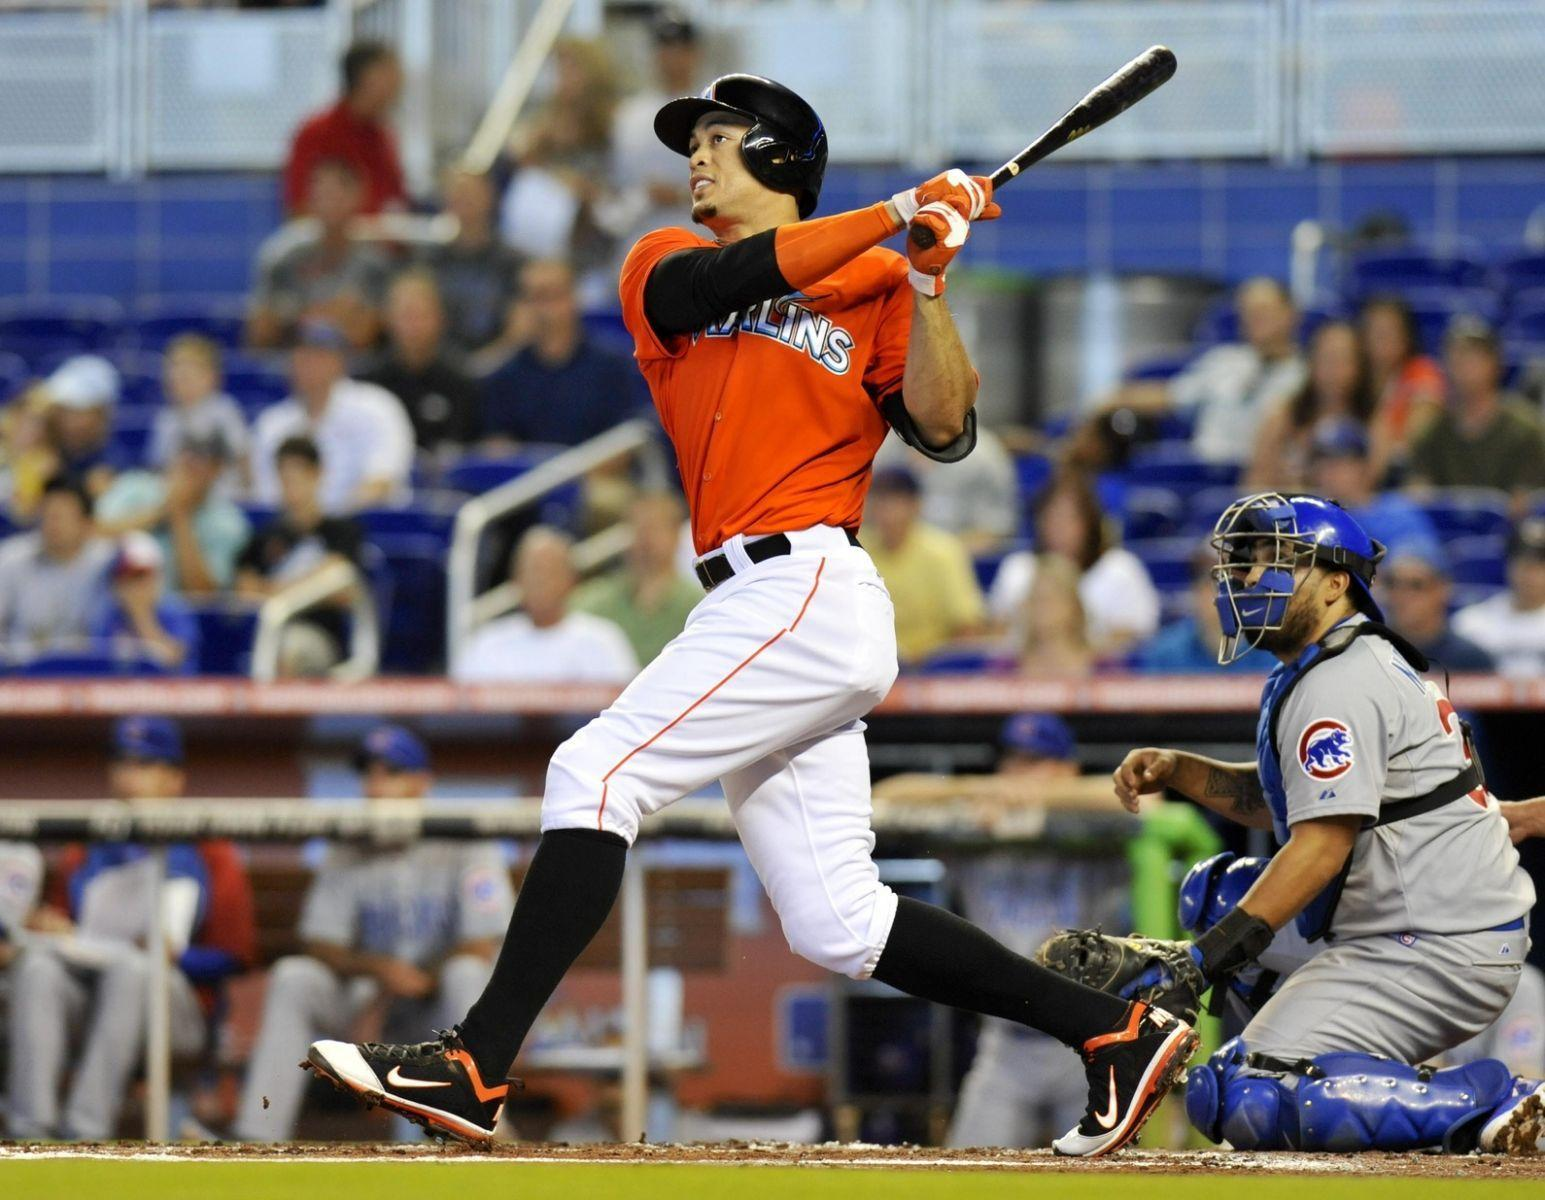 Giancarlo Stanton activated from DL by Marlins